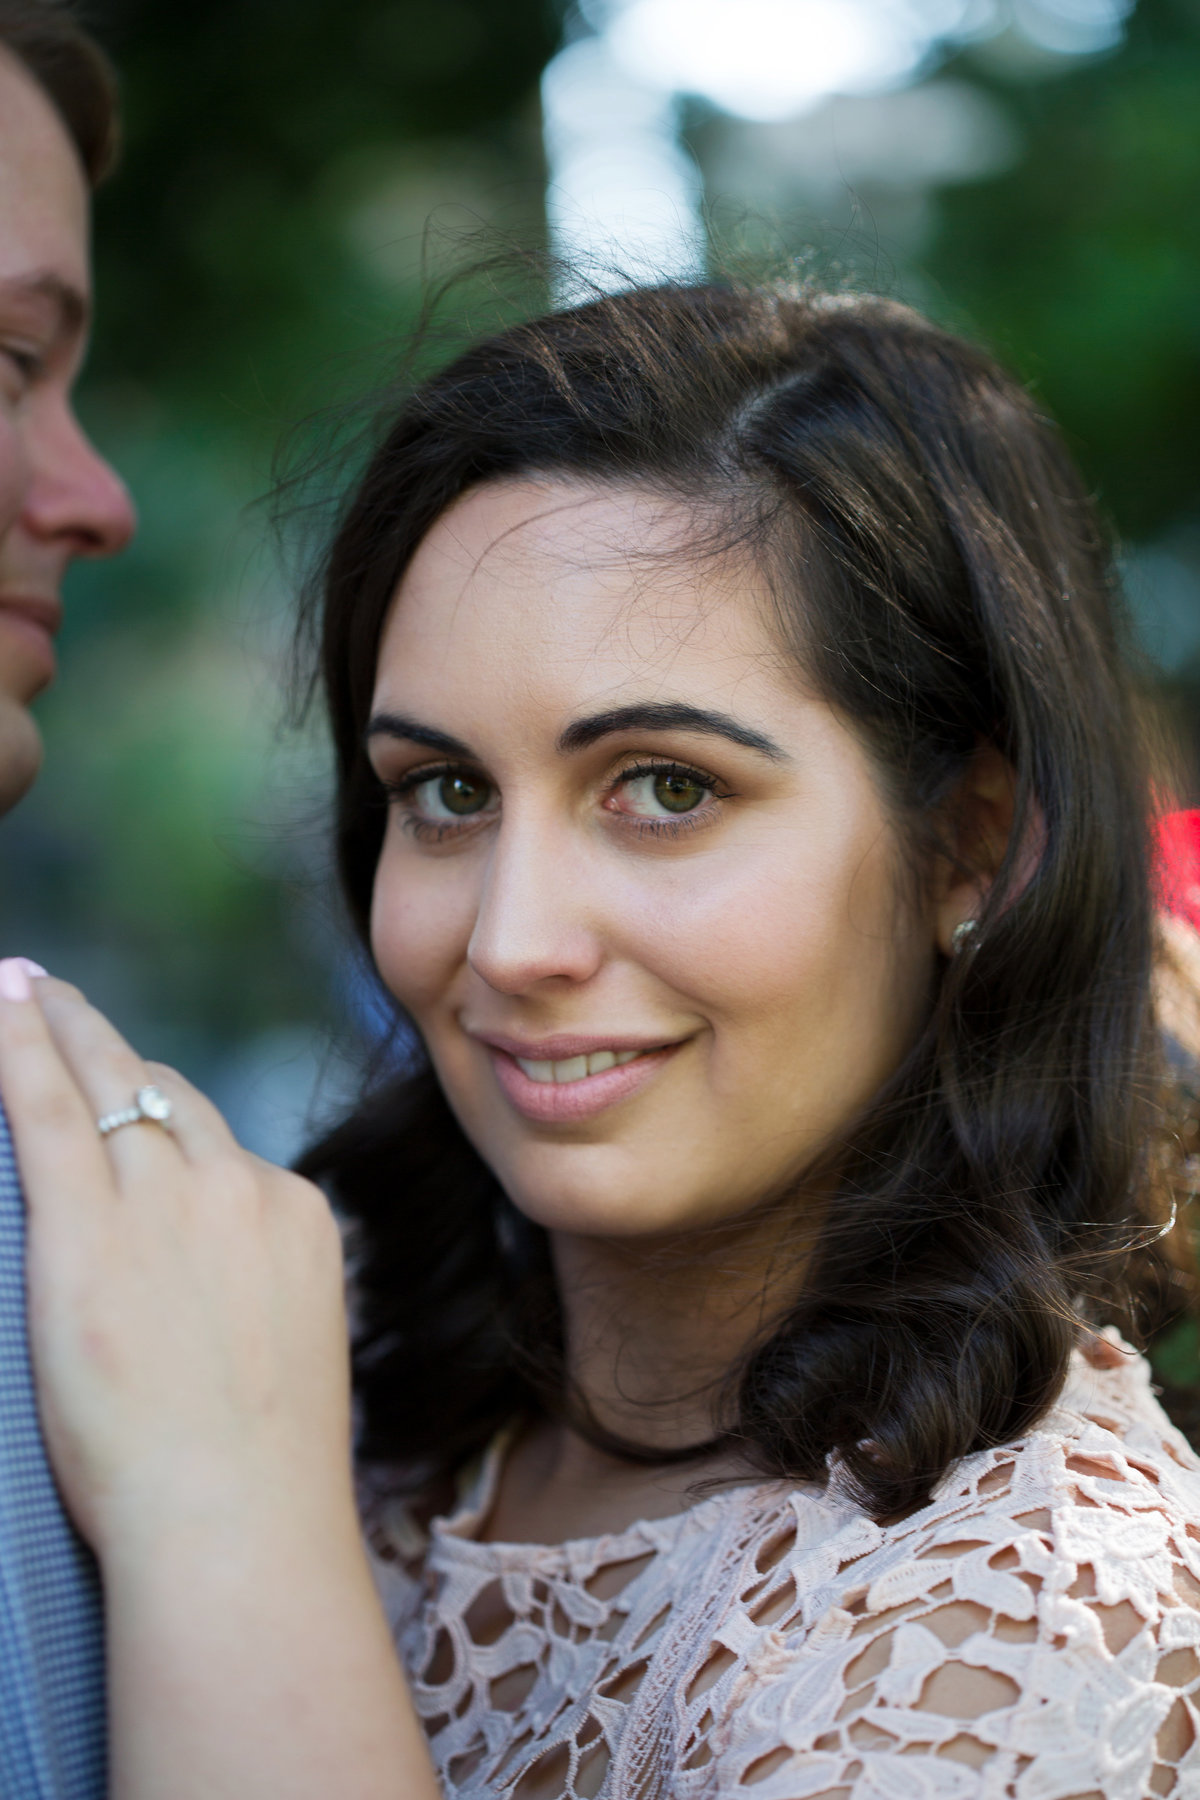 Rittenhouse-Square-Engagement-Mariya-Stecklair-Photography-74